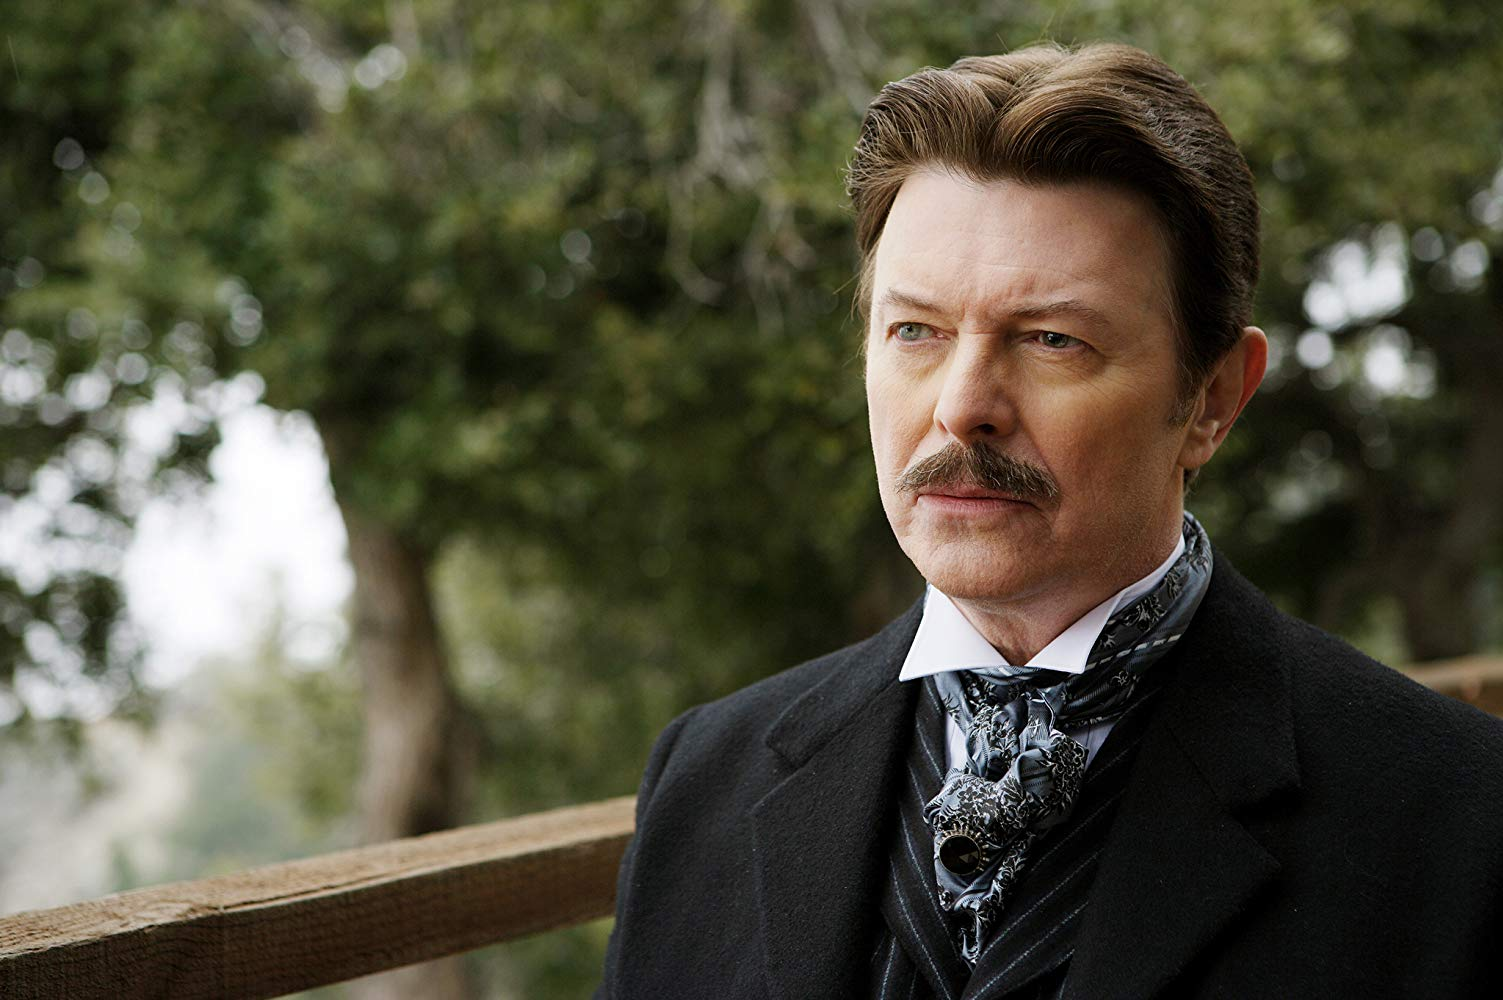 David Bowie as Nikola Tesla in The Prestige (2006)